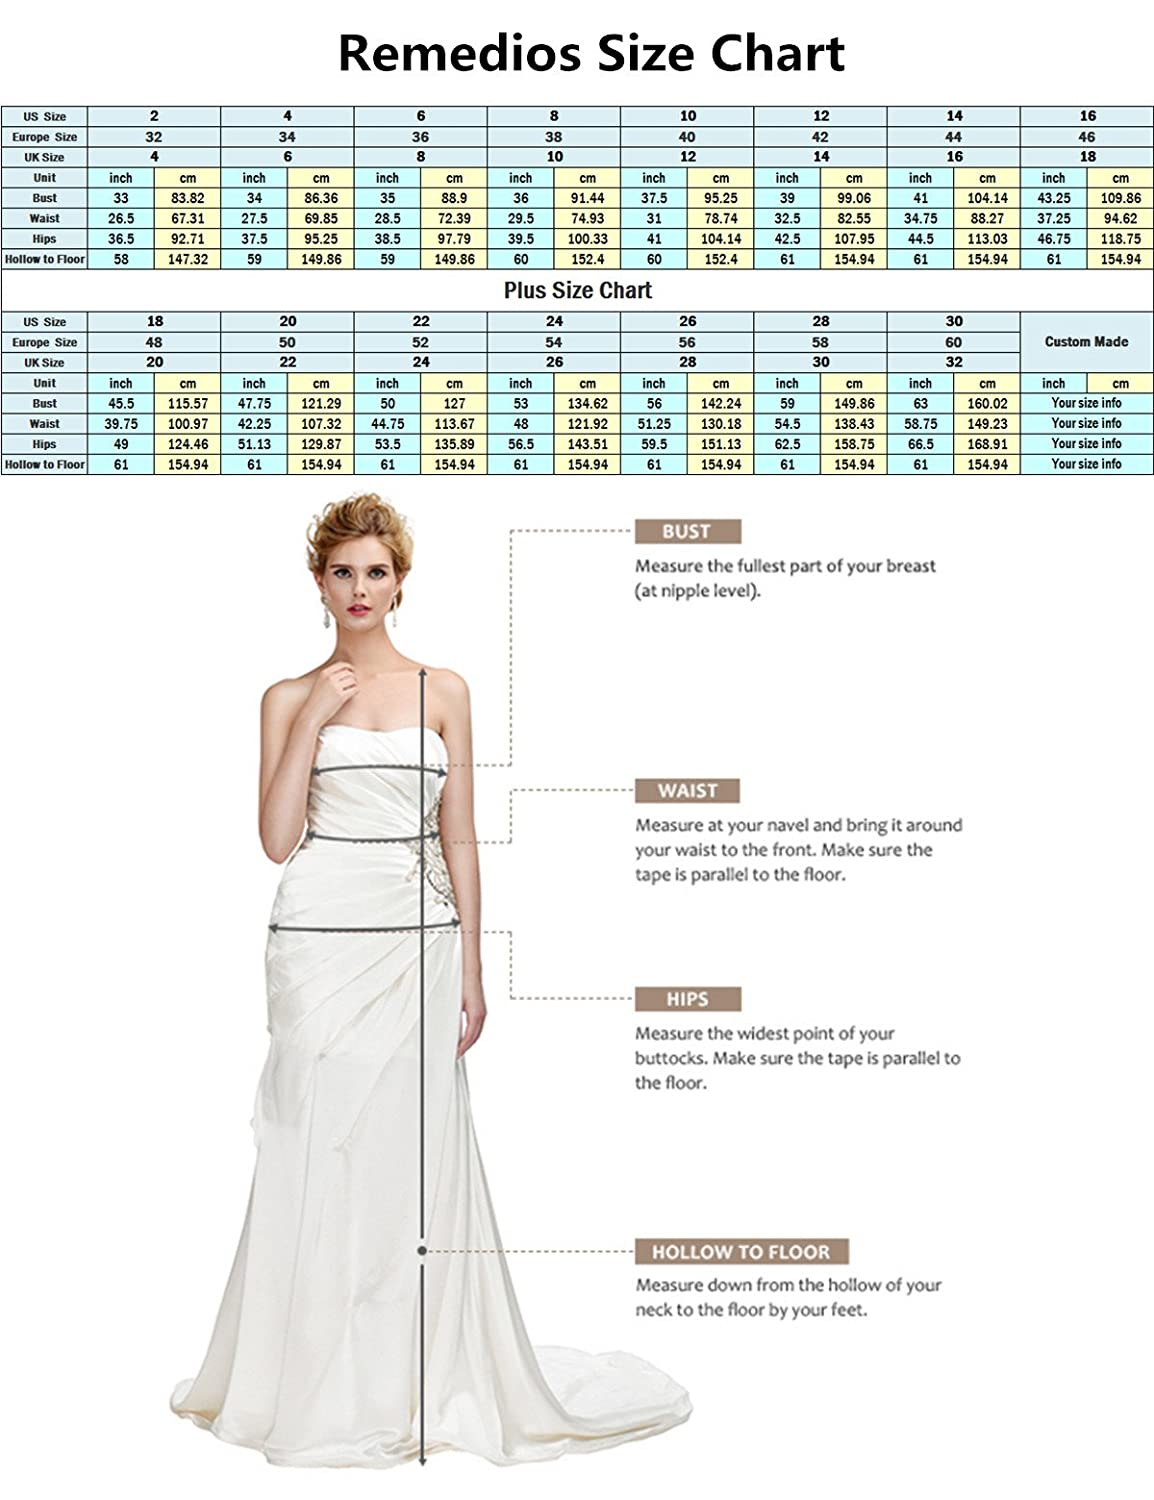 34cdcc4aa6727 Amazon.com: Topwedding Remedios A-Line Chiffon Bridesmaid Dress Strapless  Long Prom Evening Gown: Clothing